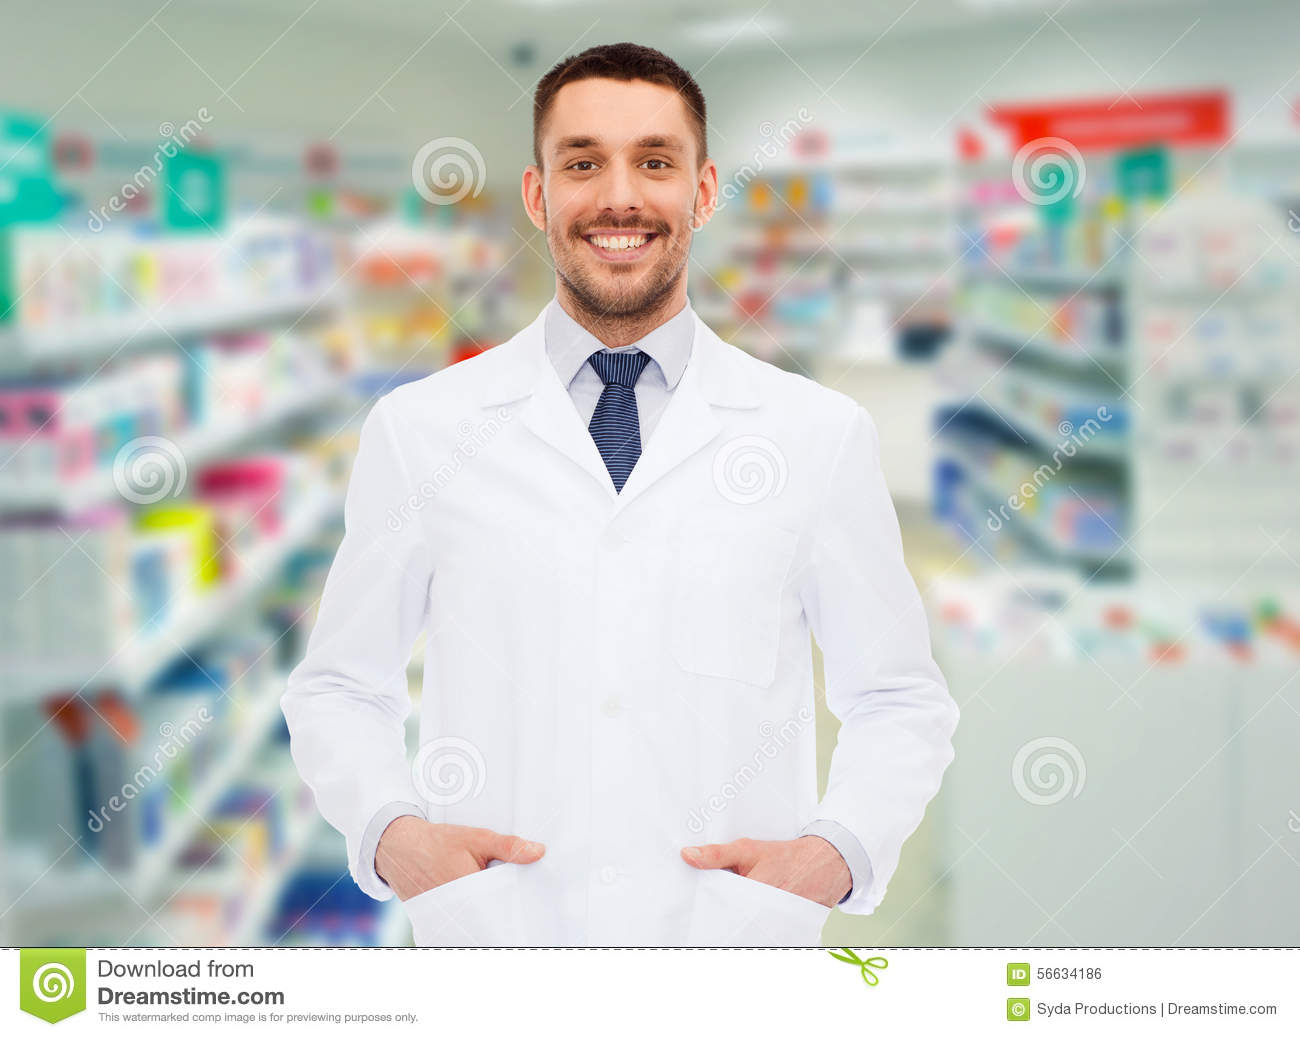 Smiling Male Pharmacist In White Coat At Drugstore Stock Photo ...